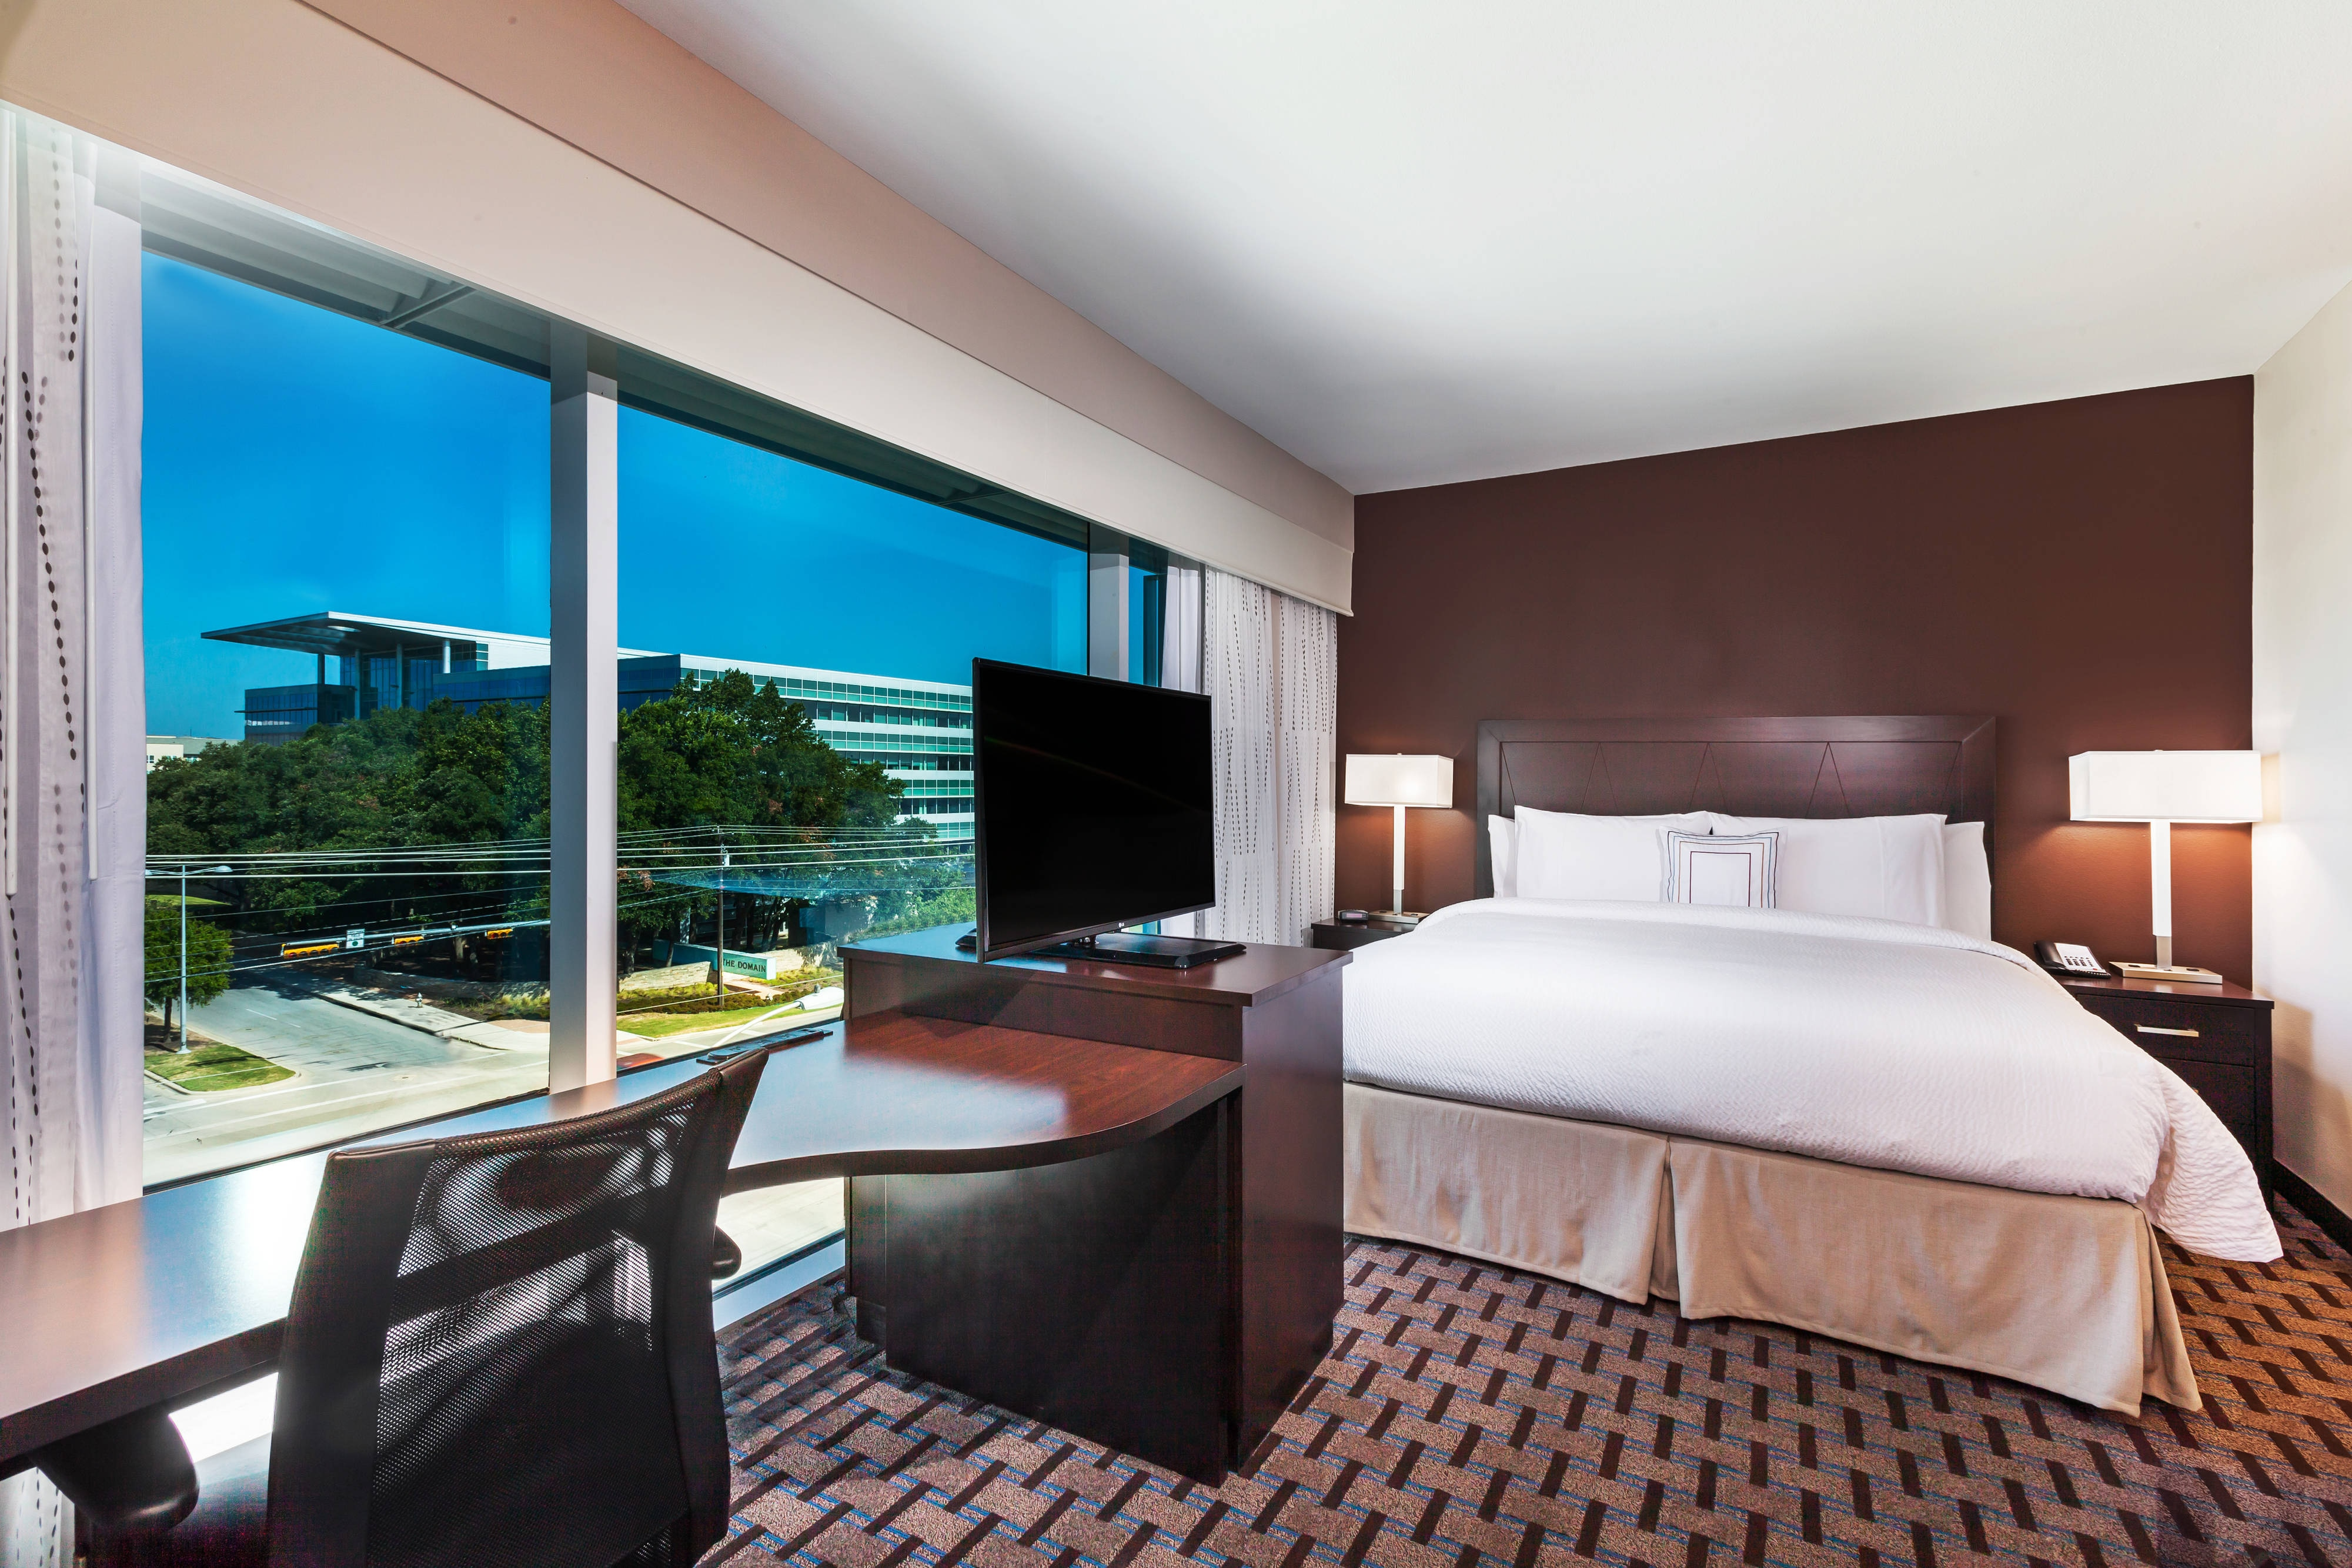 Suite King con vistas a la ciudad